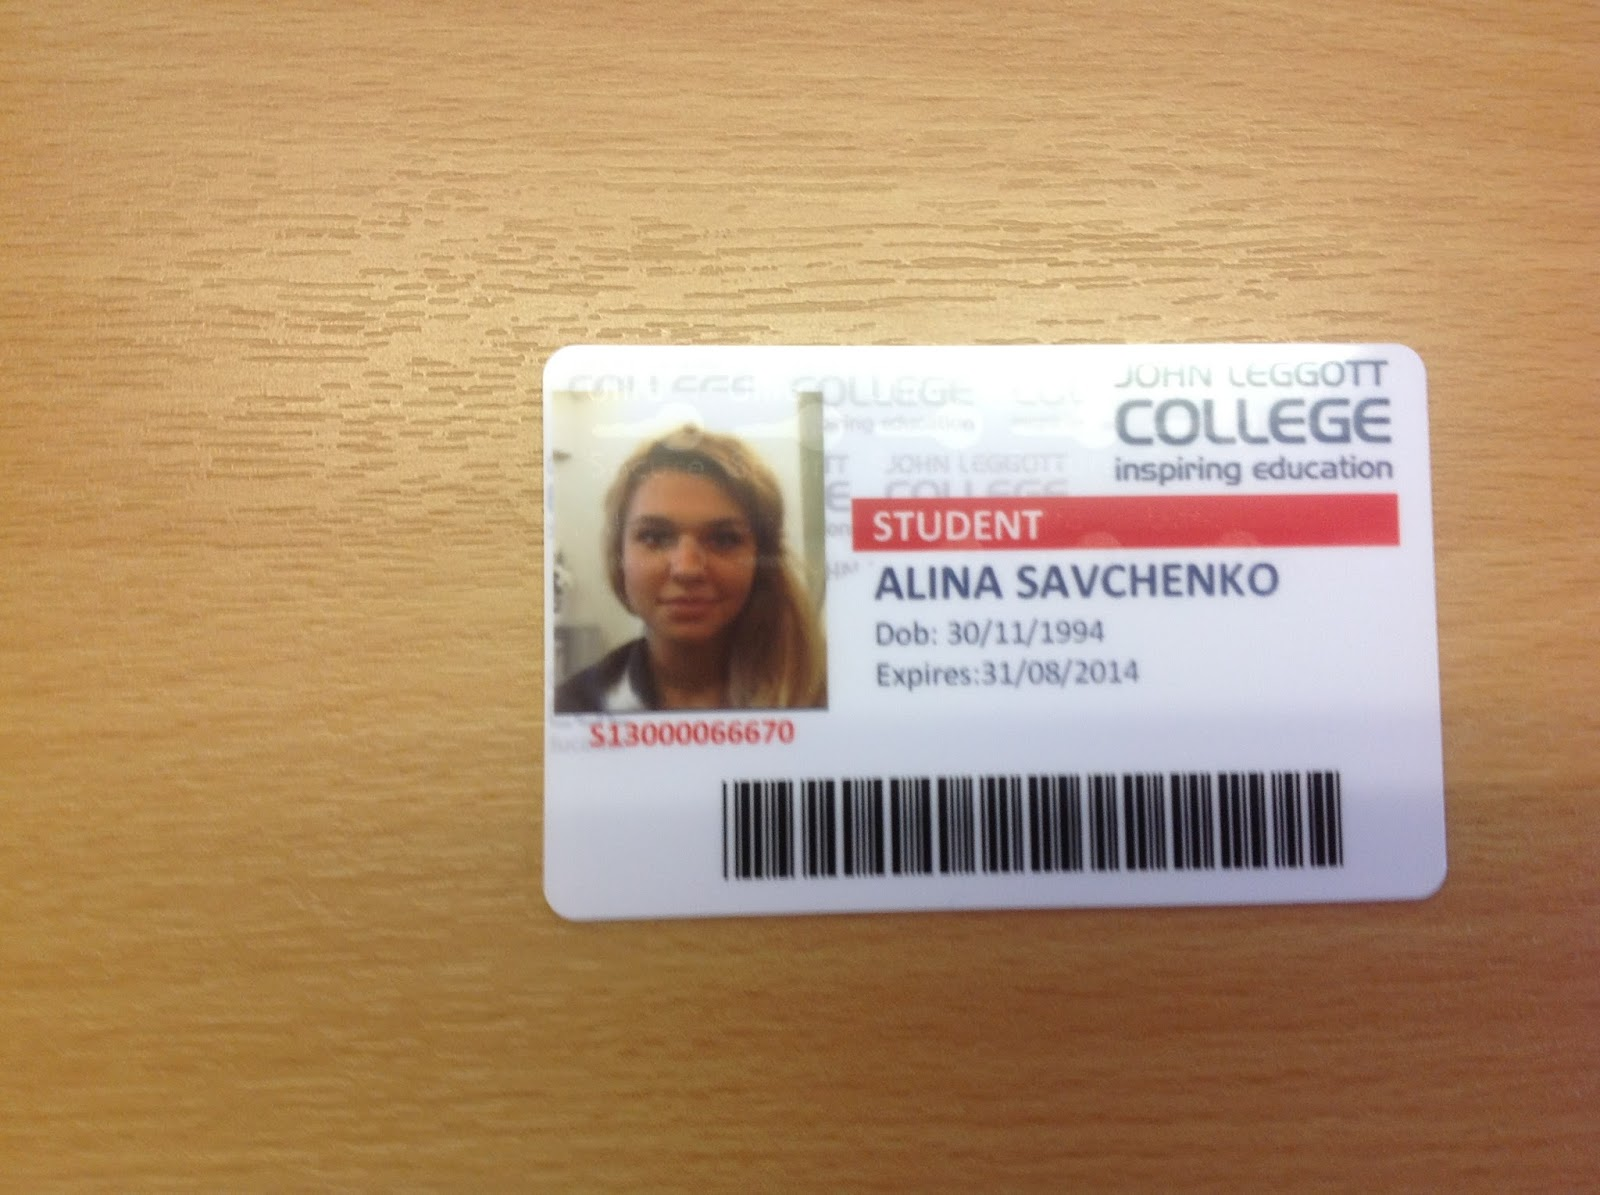 jlc a level taster course student id card